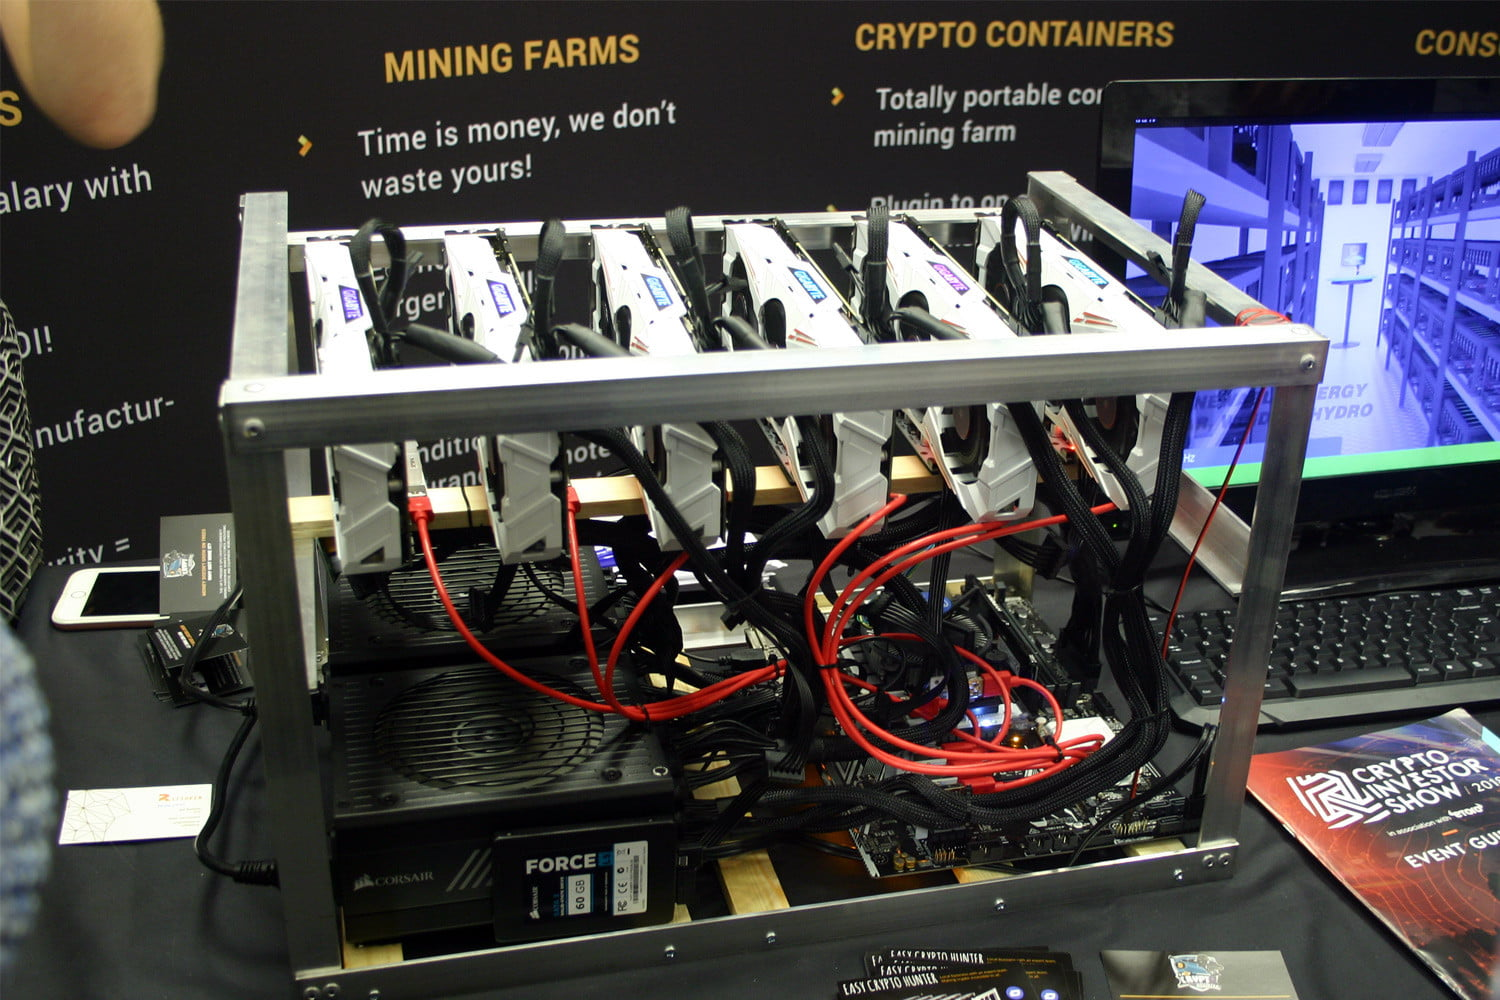 alleged cryptocurrency mining